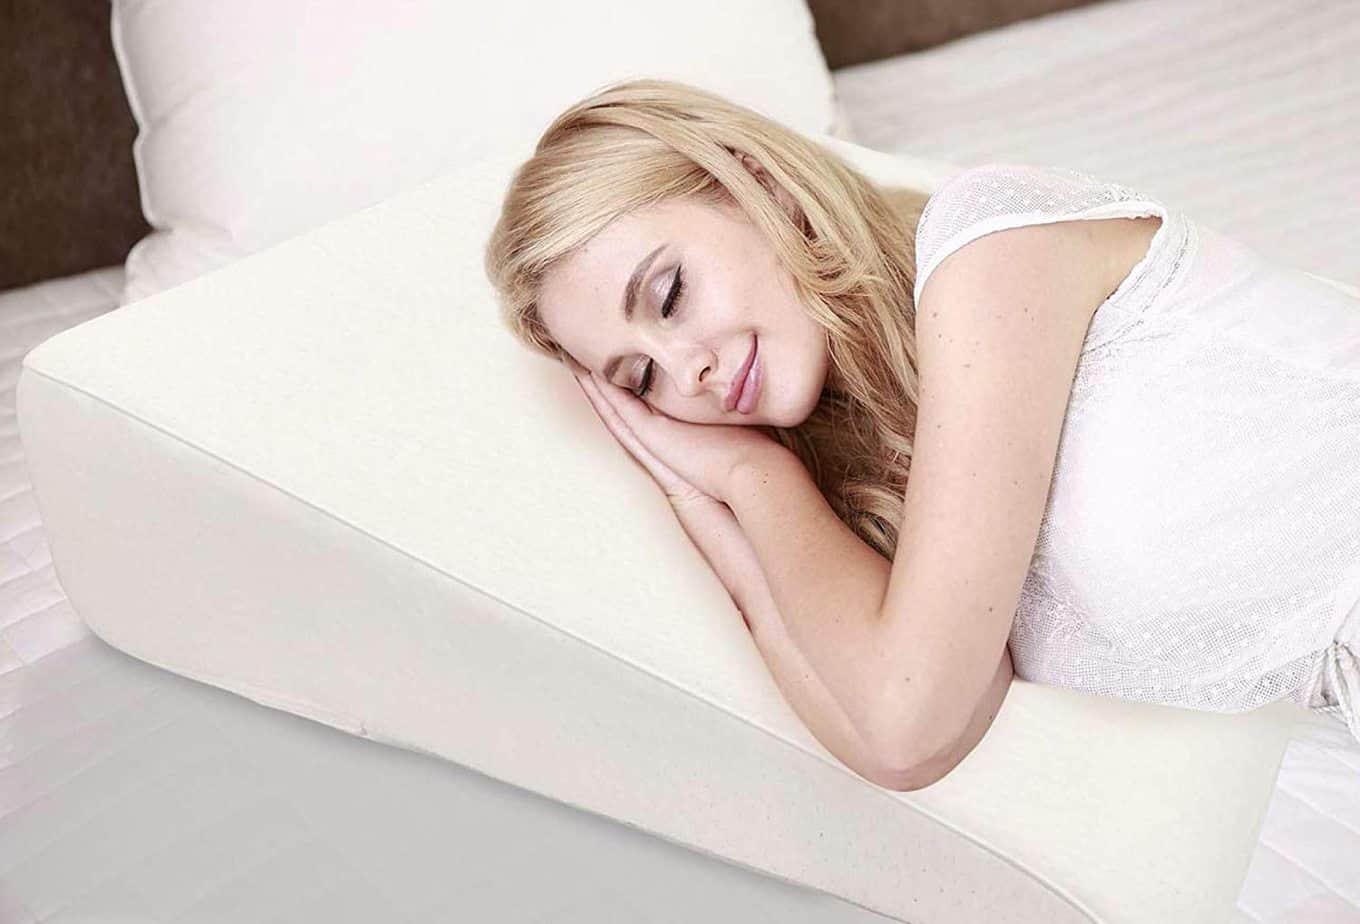 "5"" Wedge Pillow for Acid Reflux"